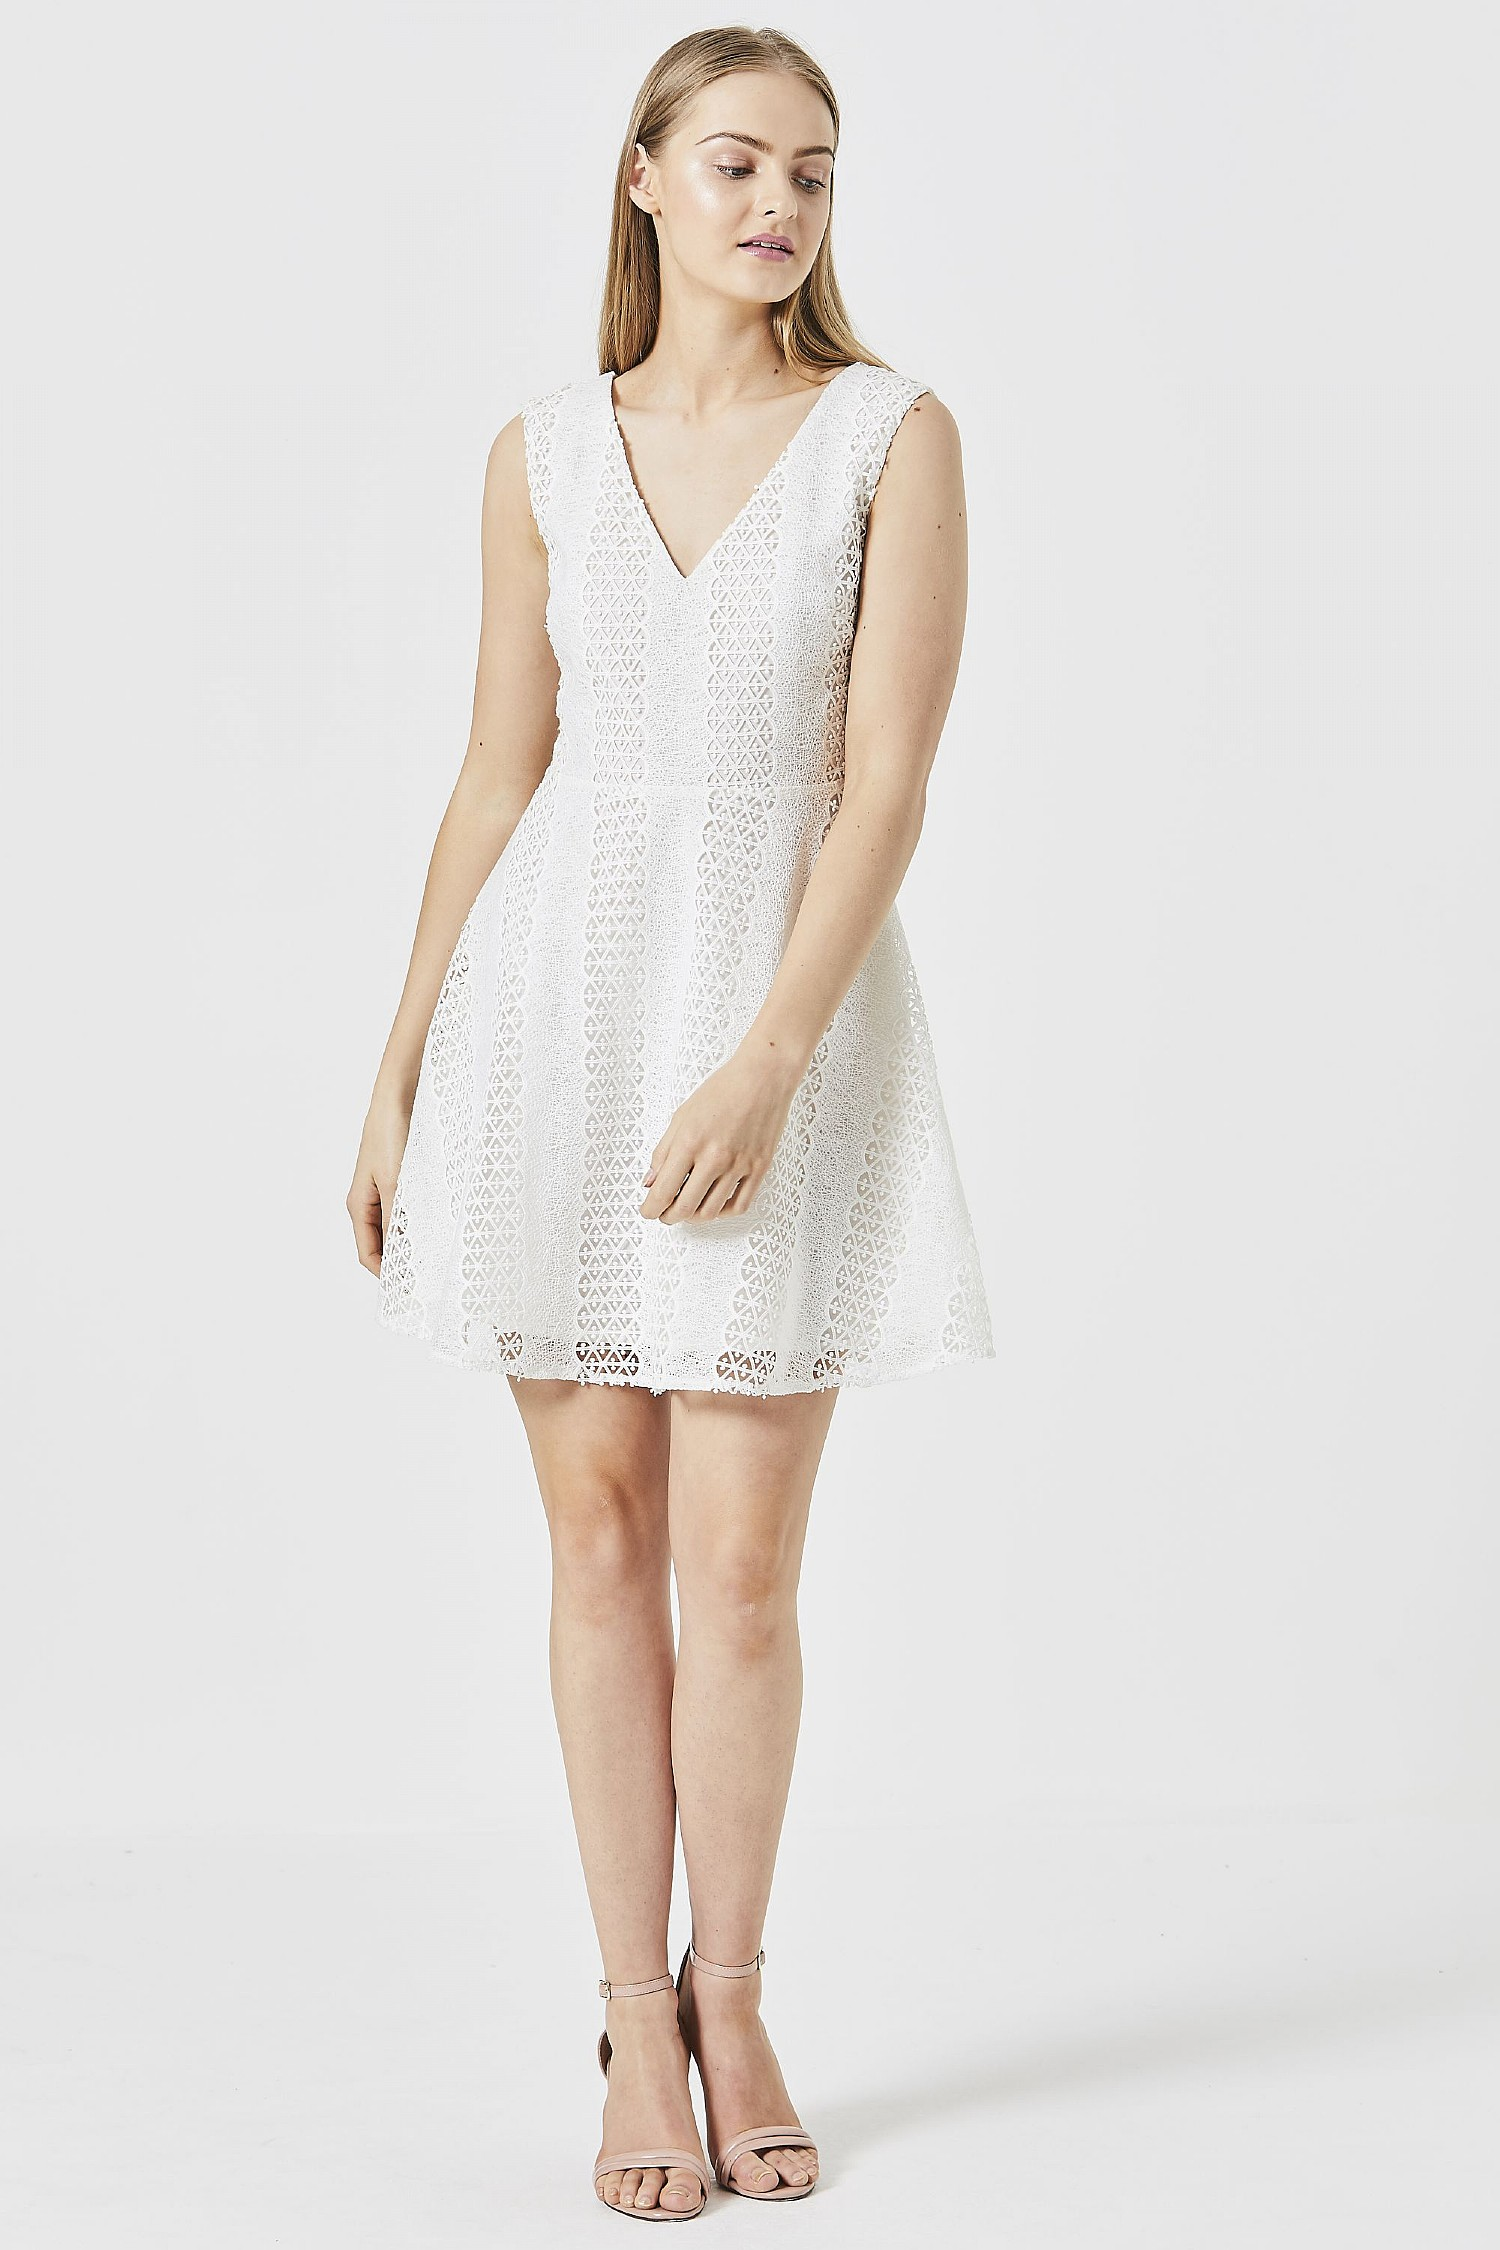 bd721b537cbc ANGELEYE White Lace A-line Dress